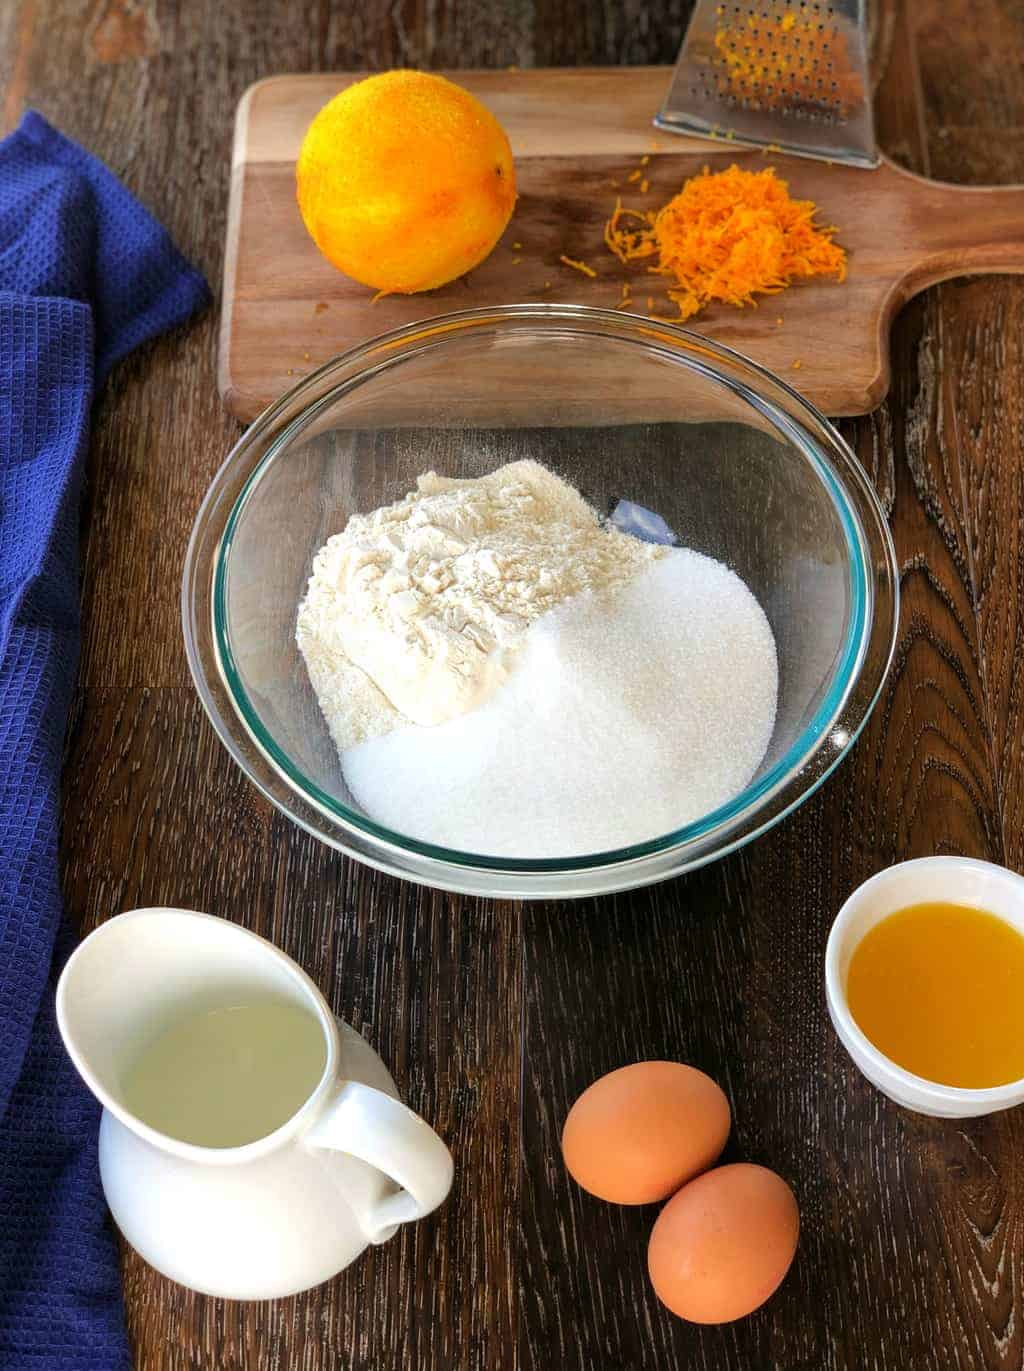 Ingredients for Orange Muffins